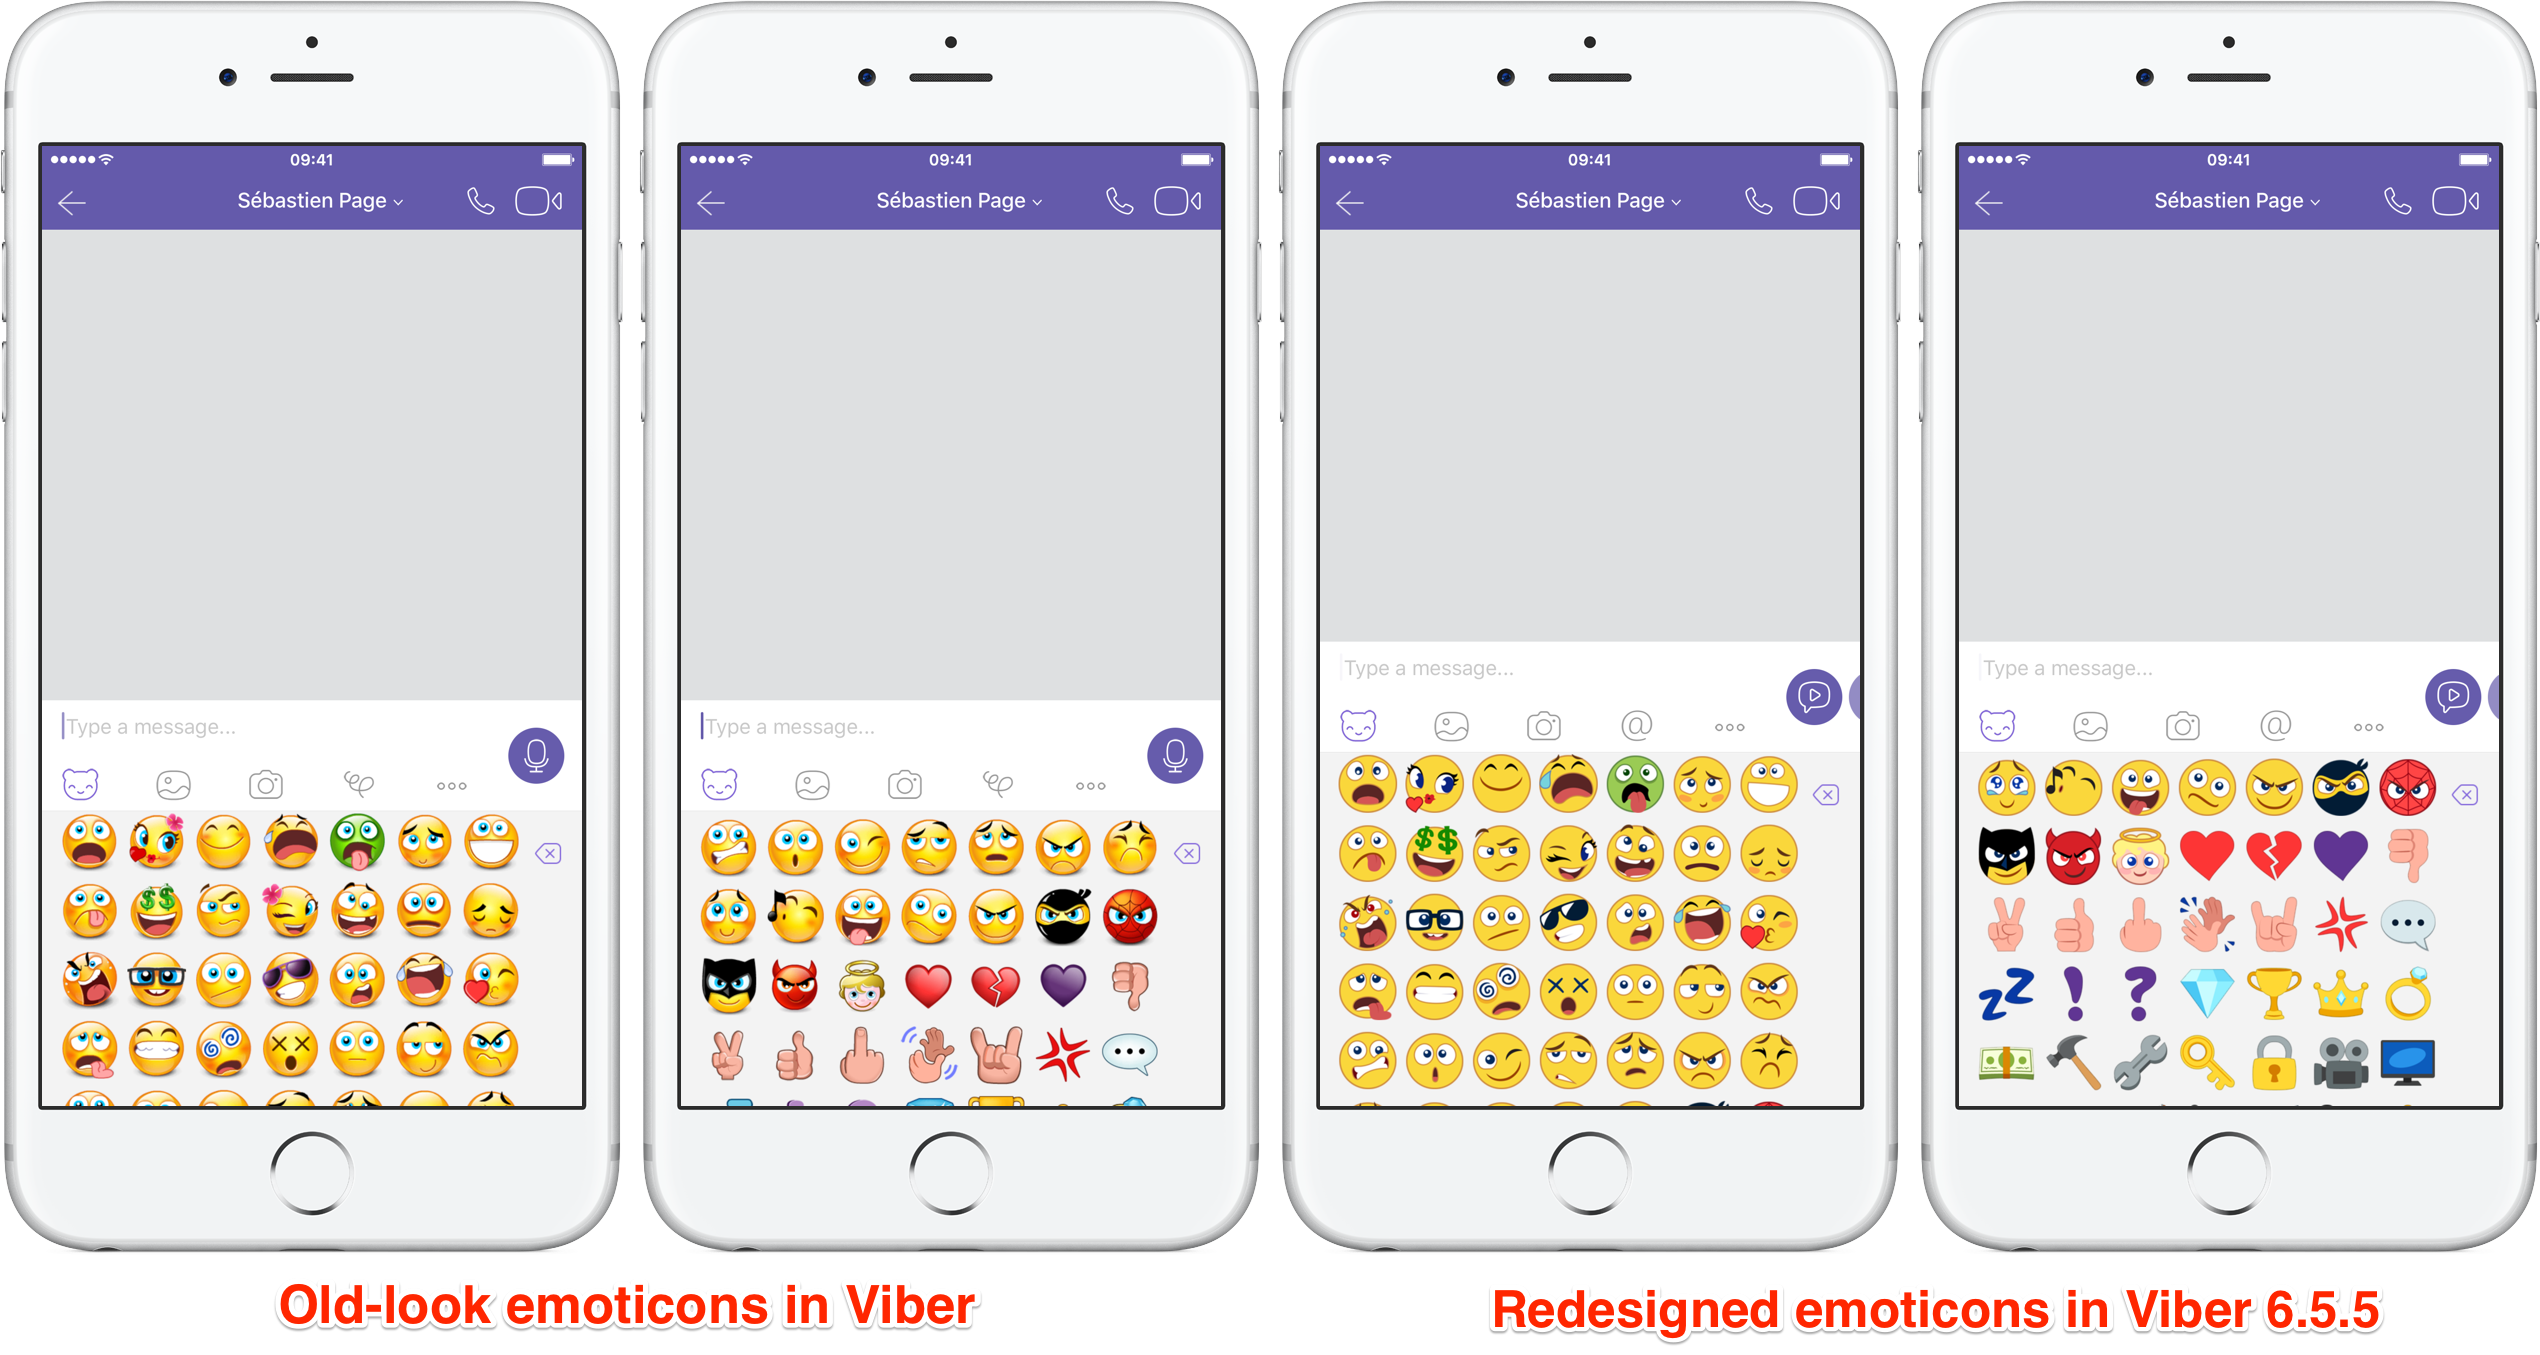 Viber 6.5.5 for iOS redesigned emoji iPhone screenshot 001